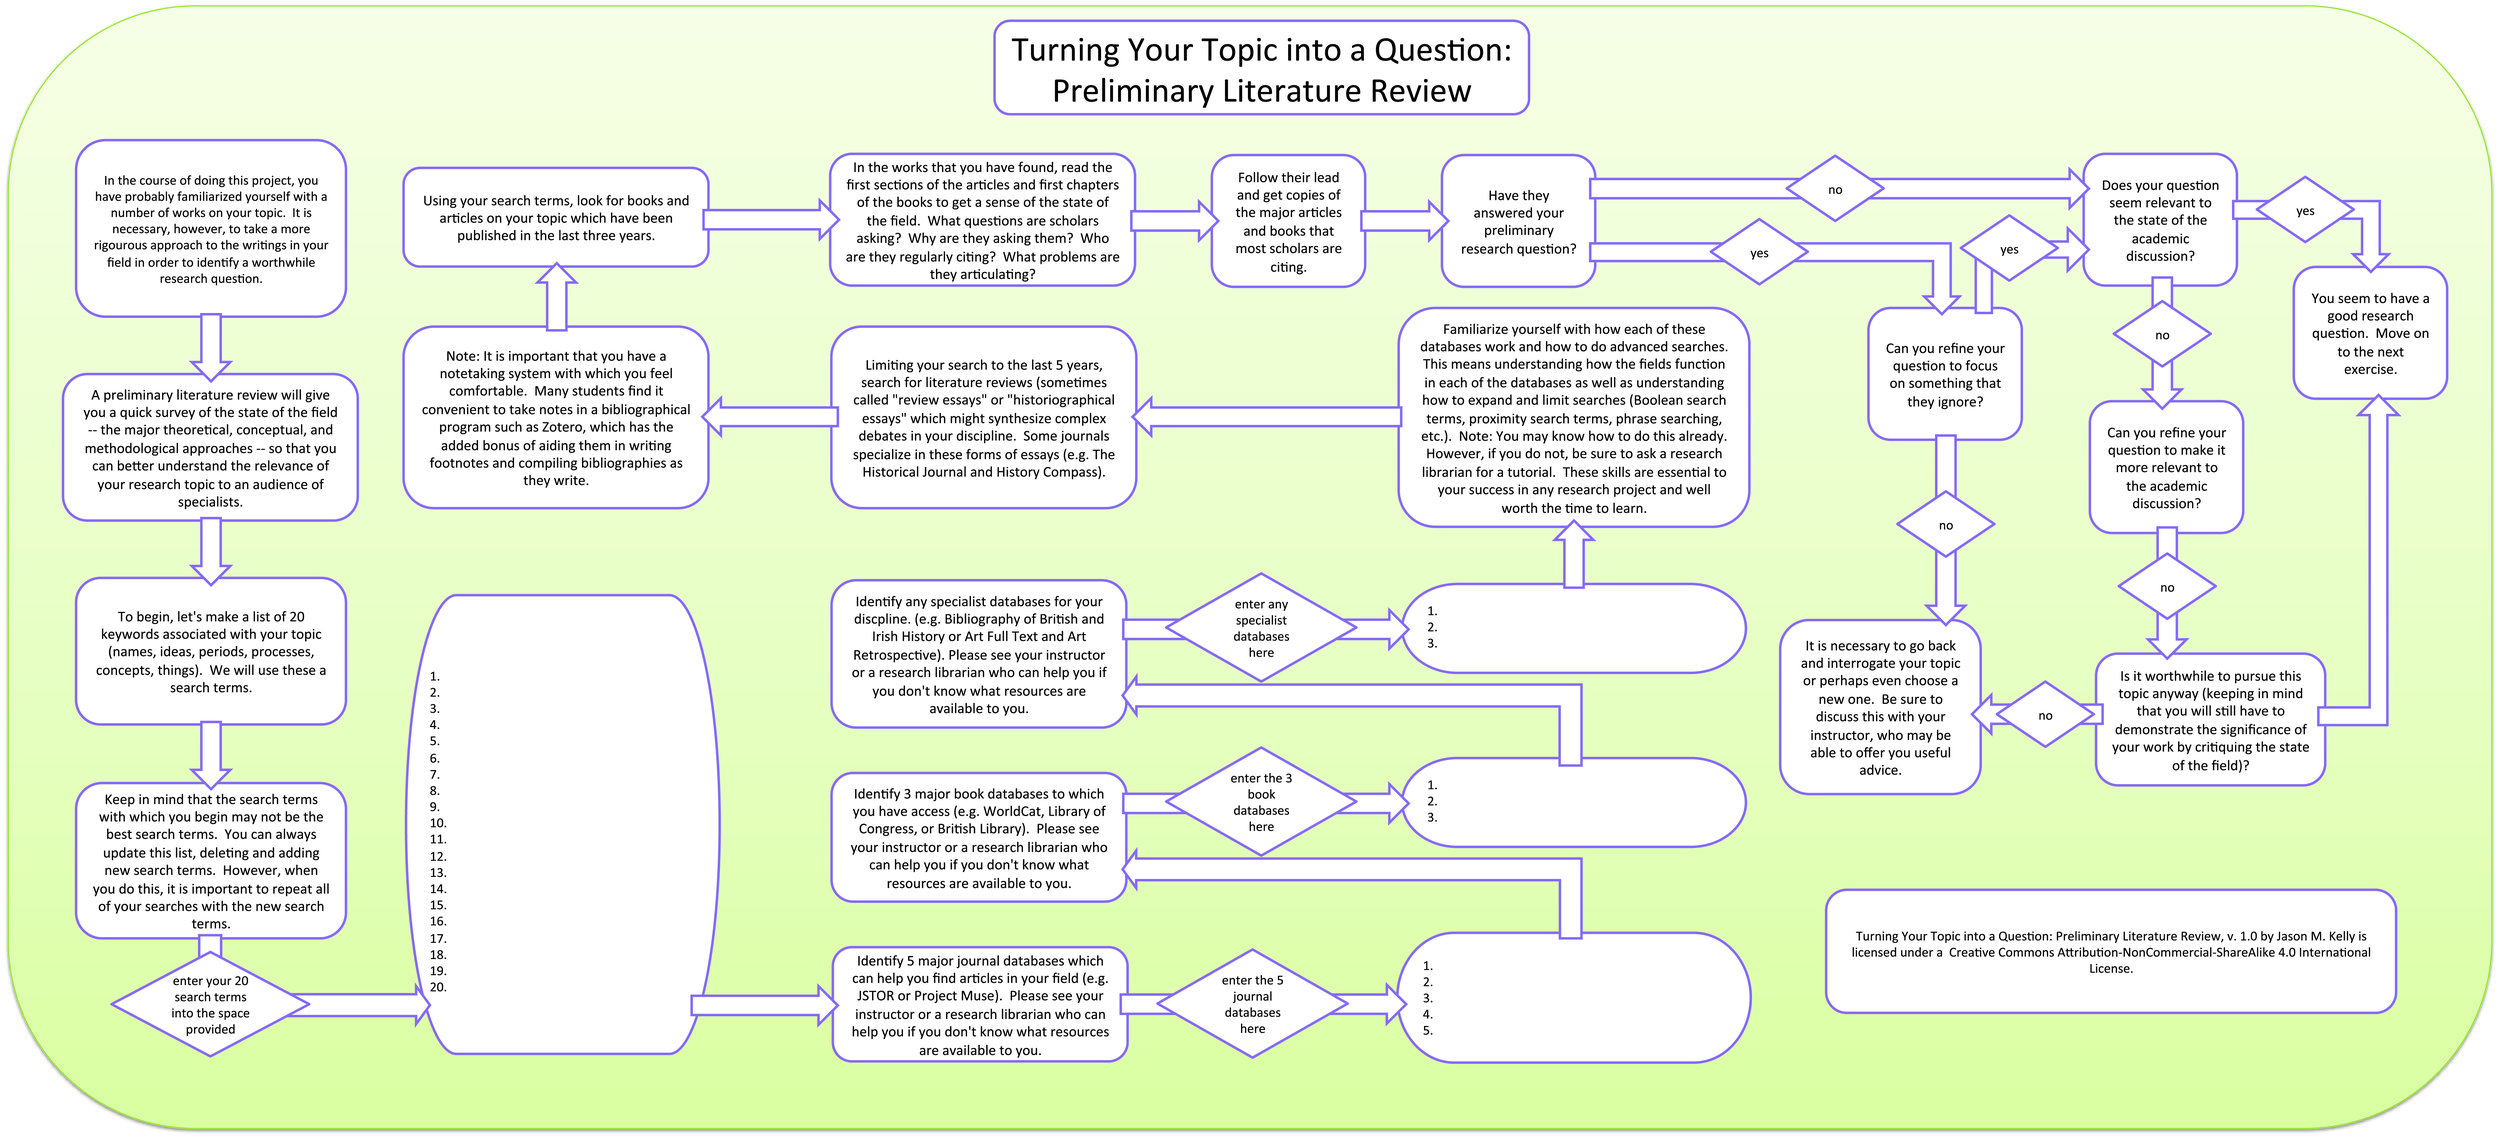 Preliminary Literature Review Flowchart